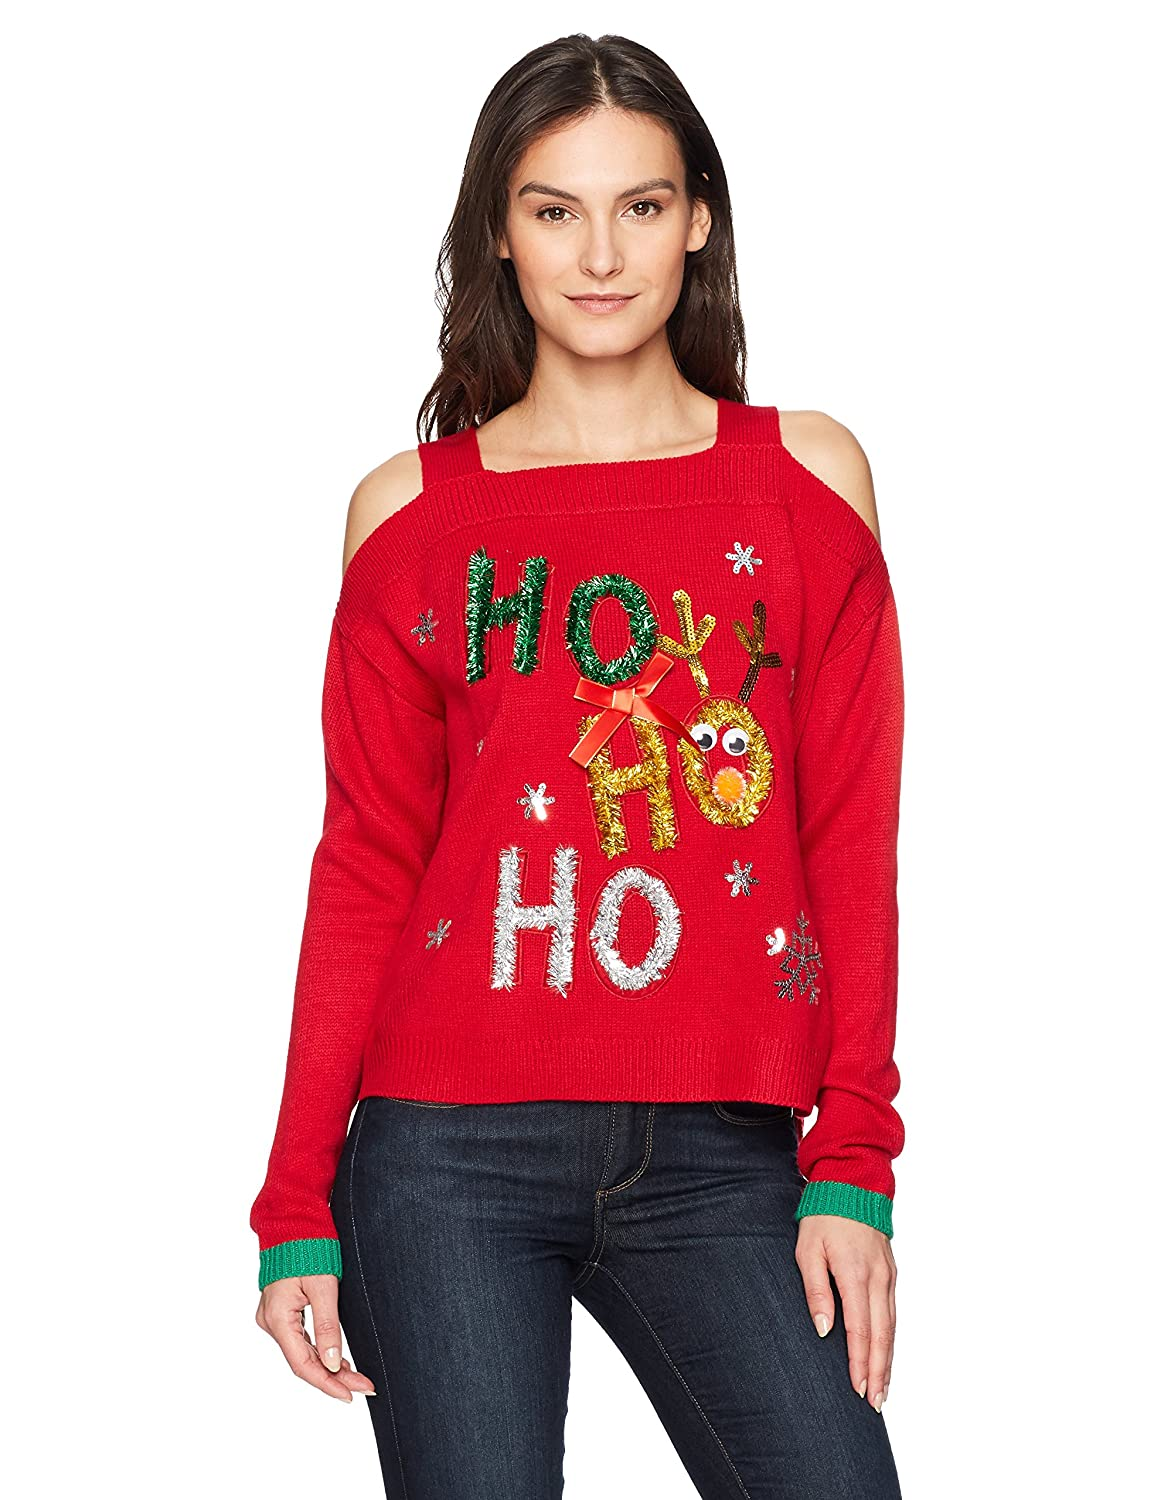 Blizzard Bay Womens Selfie Polaroid Photo Ugly Christmas Sweater with Jingling Bells